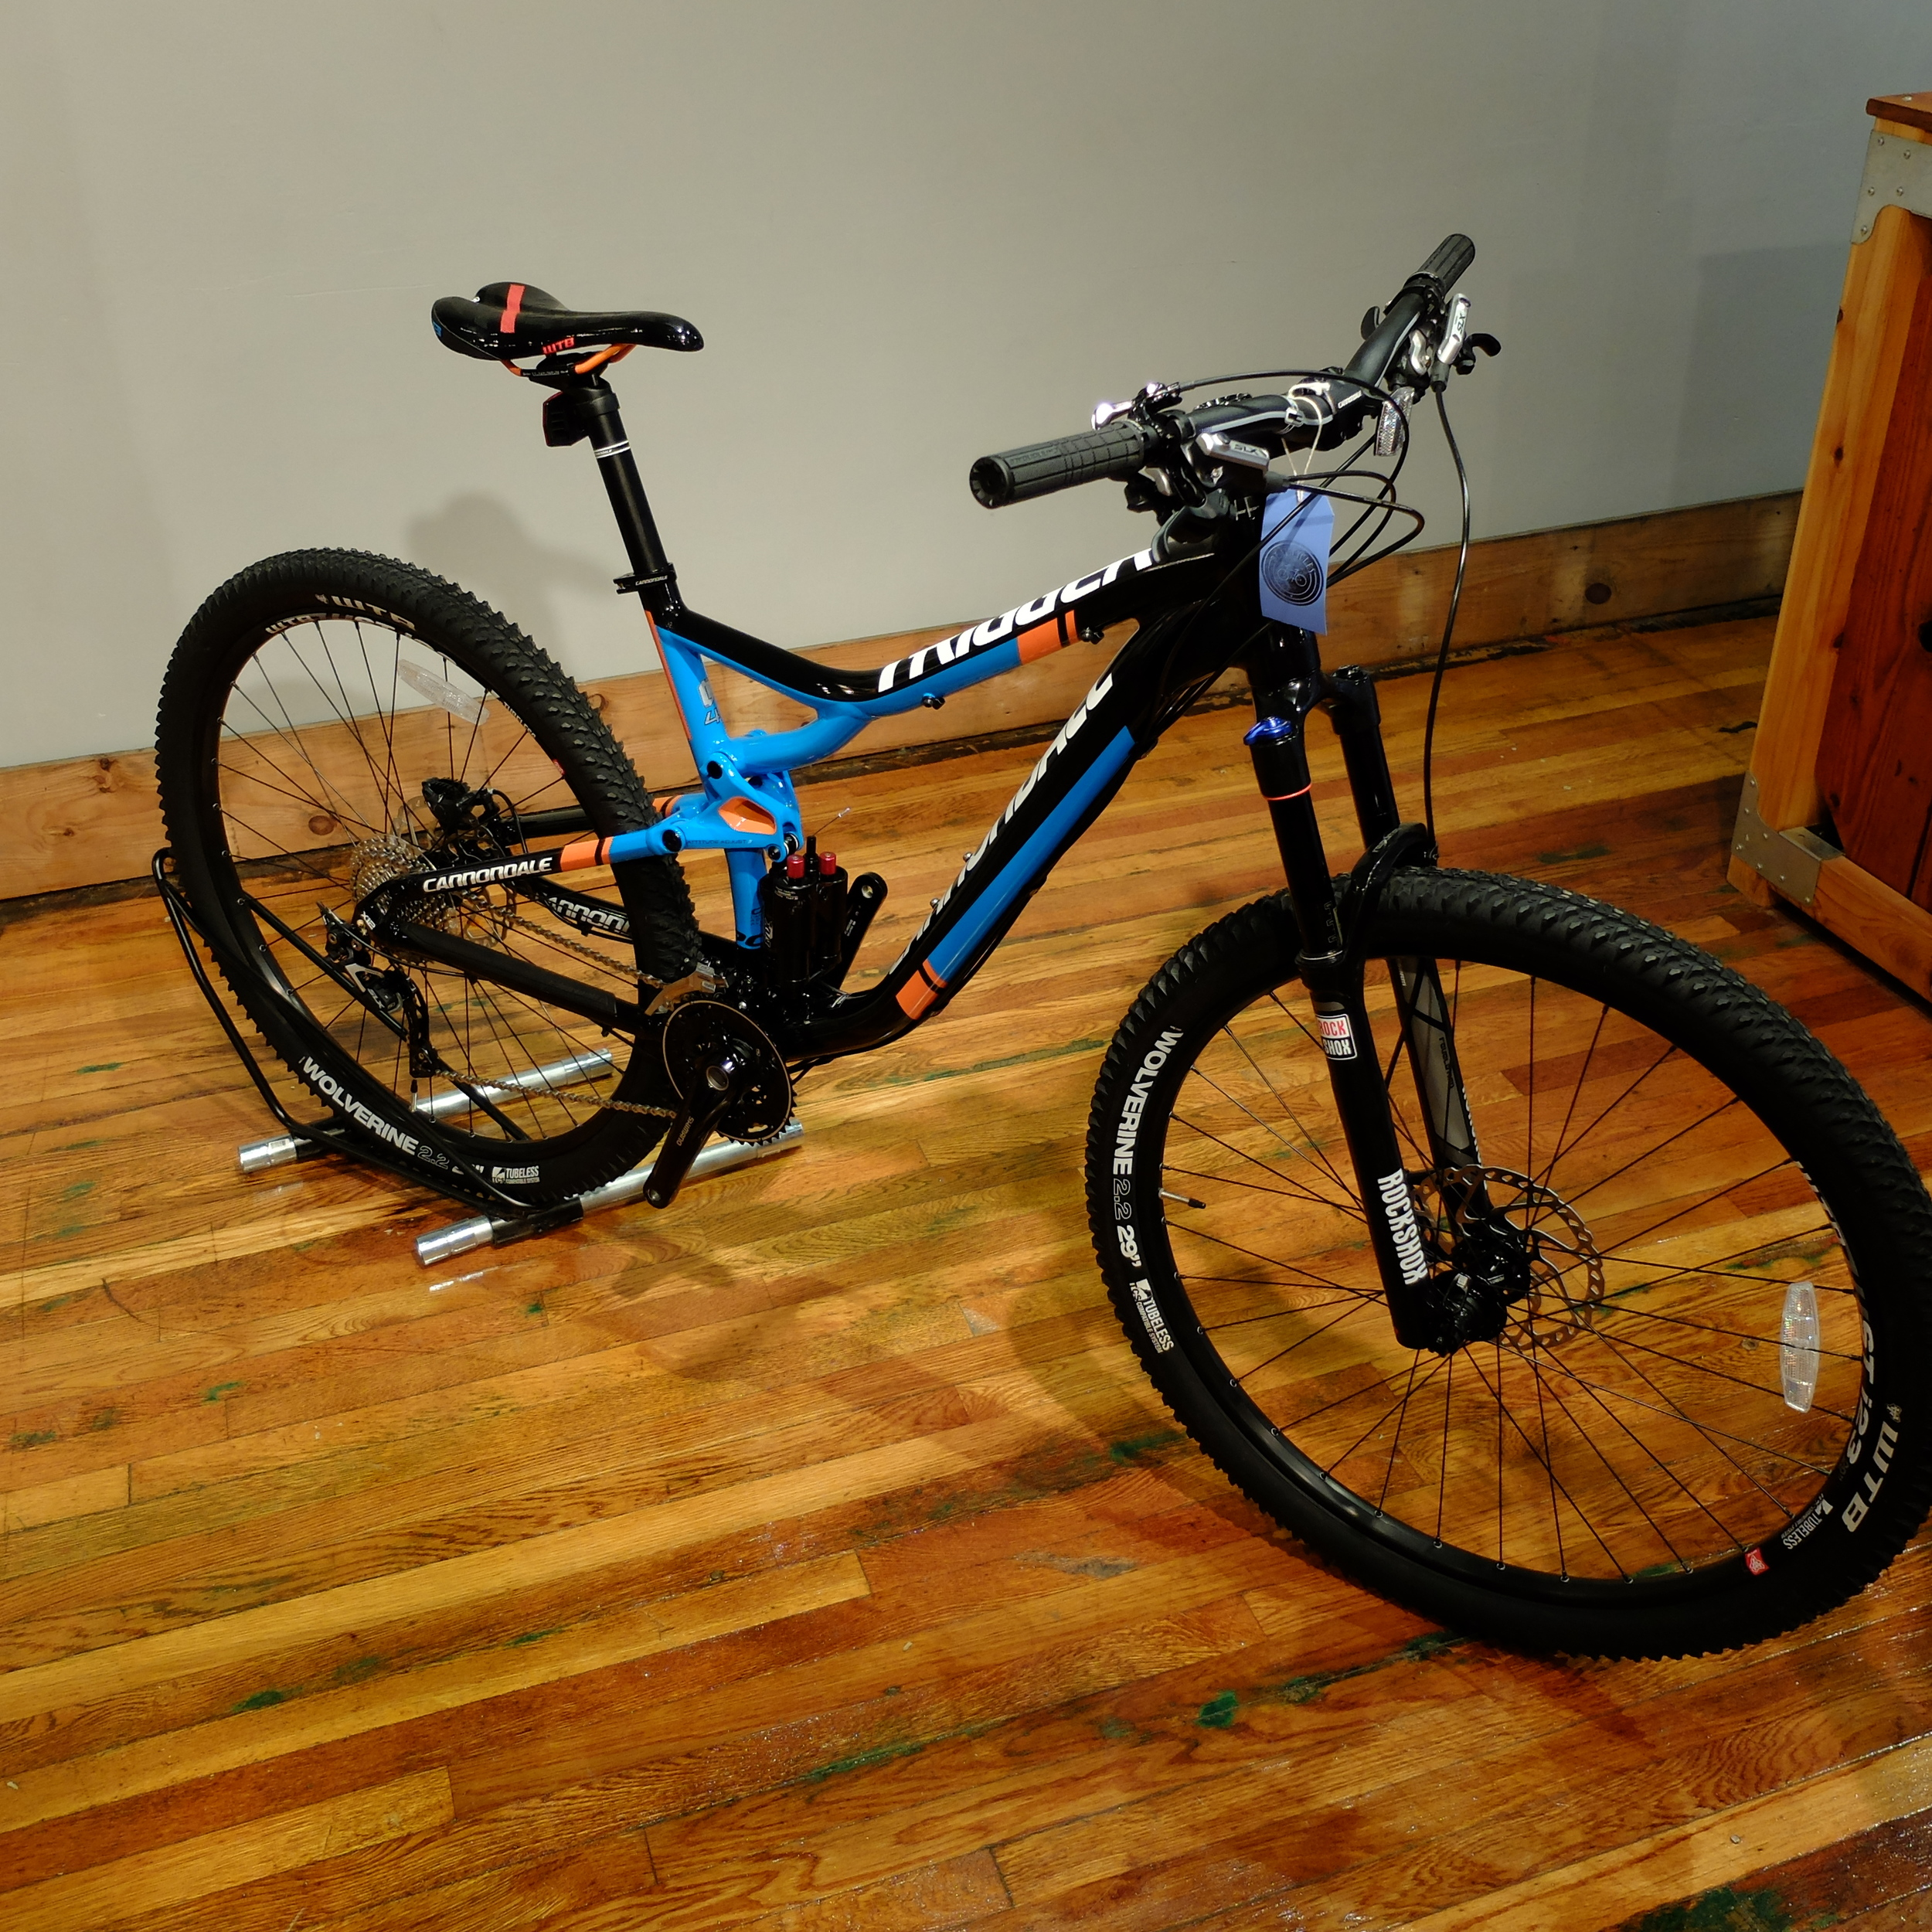 This bike eats dirt for breakfast, lunch, second lunch, linner, dinner and a bedtime snack.